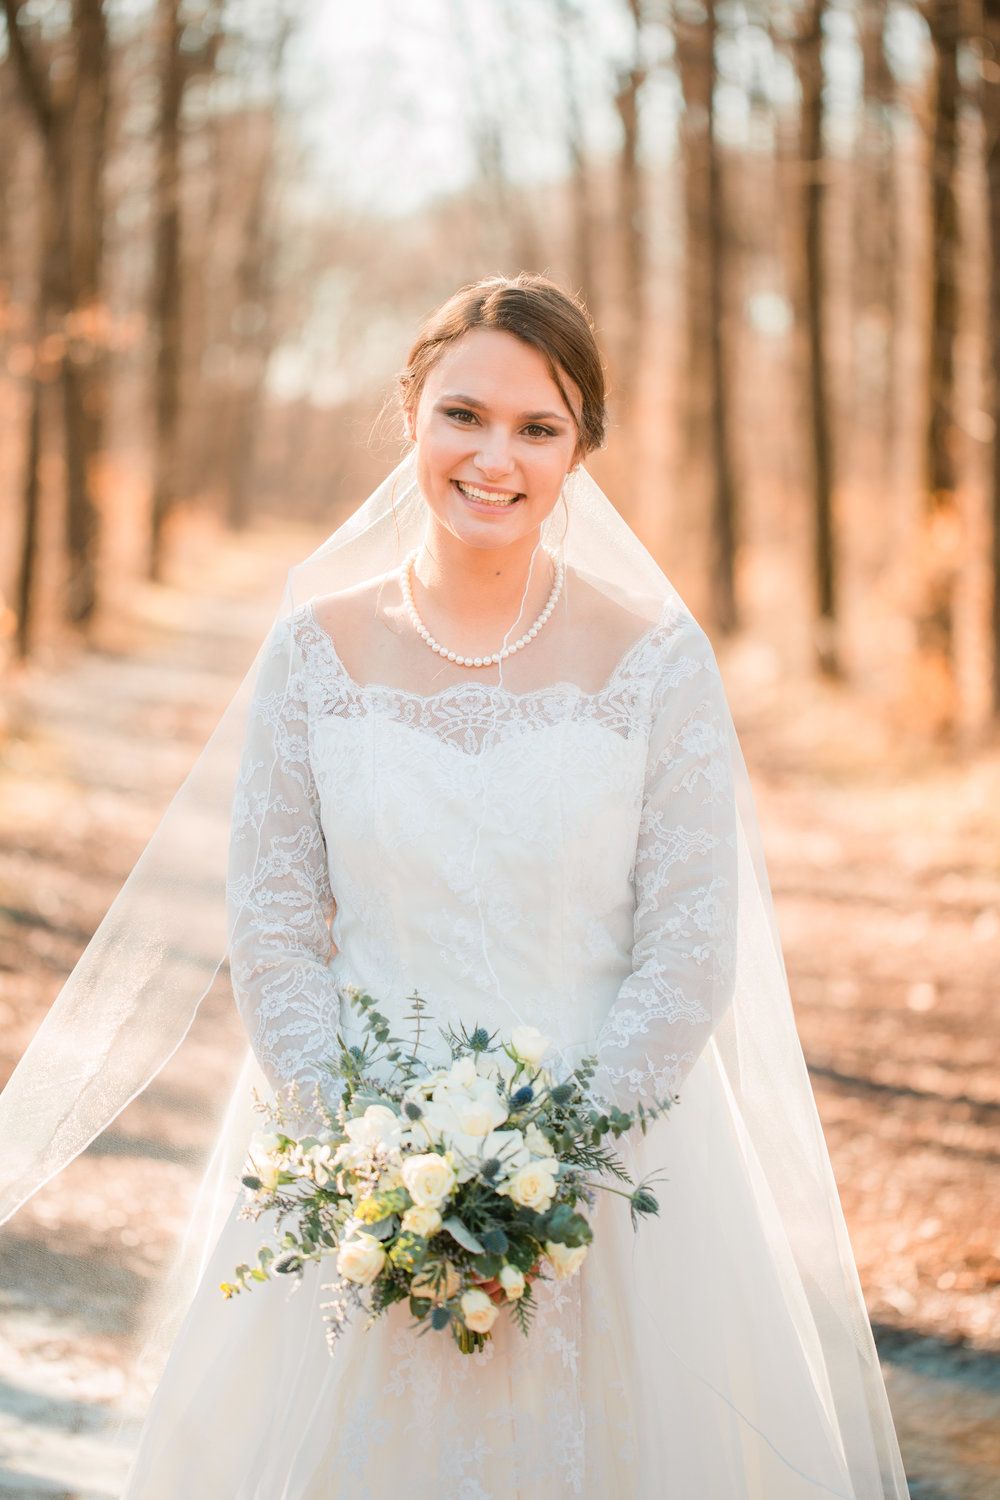 bridal portraits in woods natural photos long veil and lace vintage dress